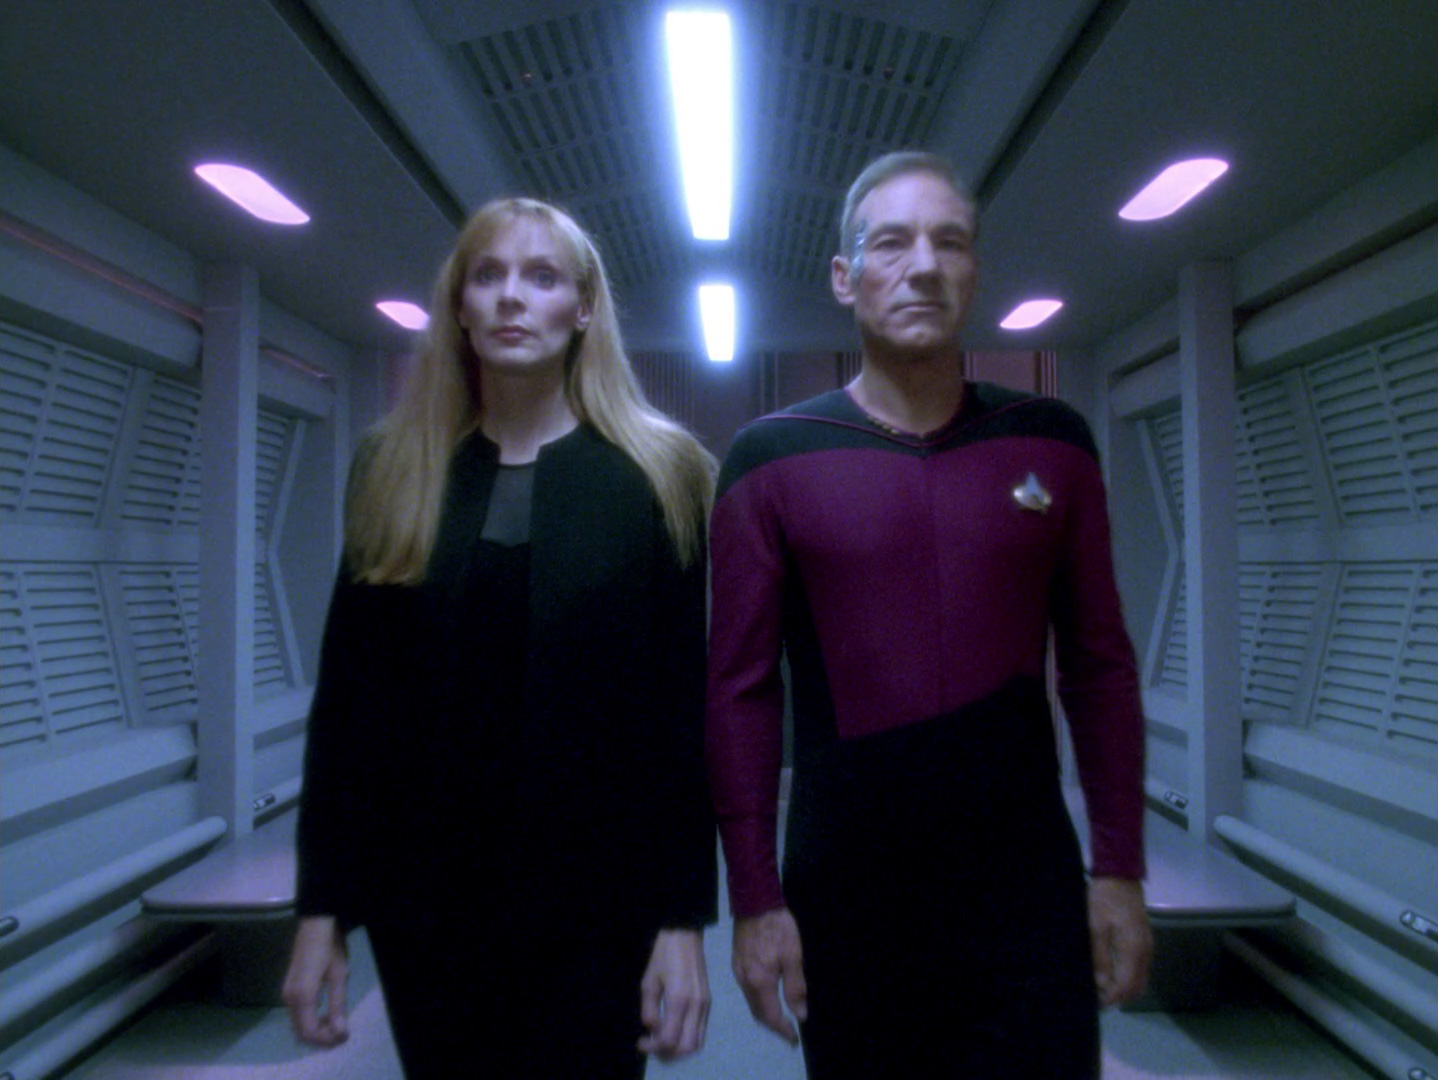 Crusher_and_Picard_2354.jpg